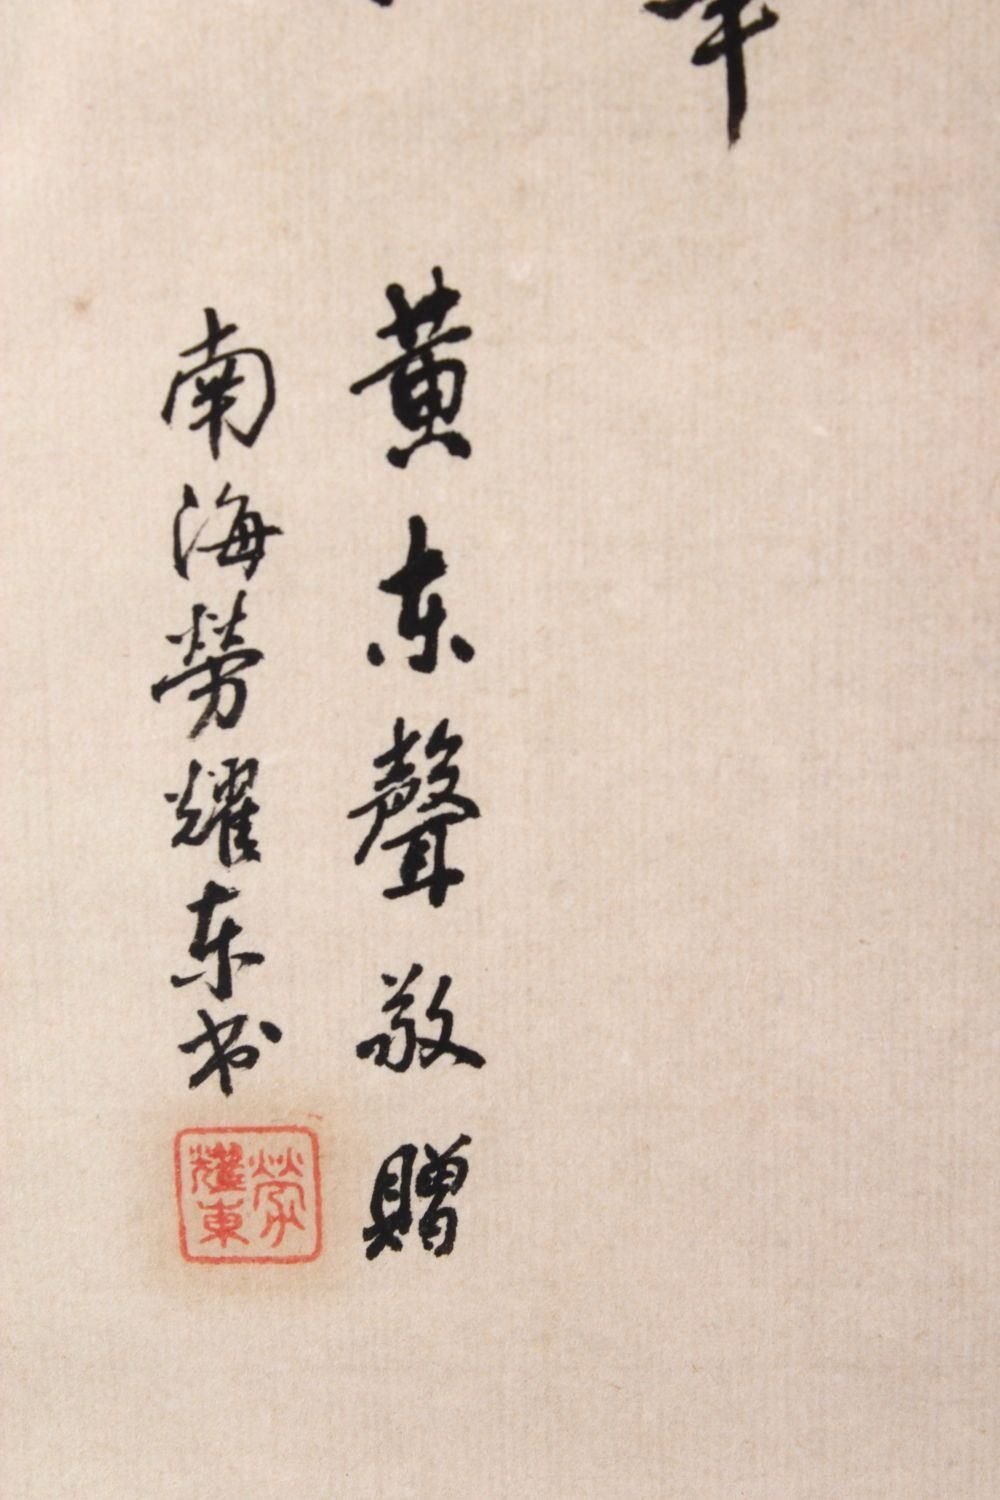 A CHINESE PAINTED CALLIGRAPHY WORK PICTURE, a presentation painting for DR Meltzer from Waleter, - Image 3 of 5